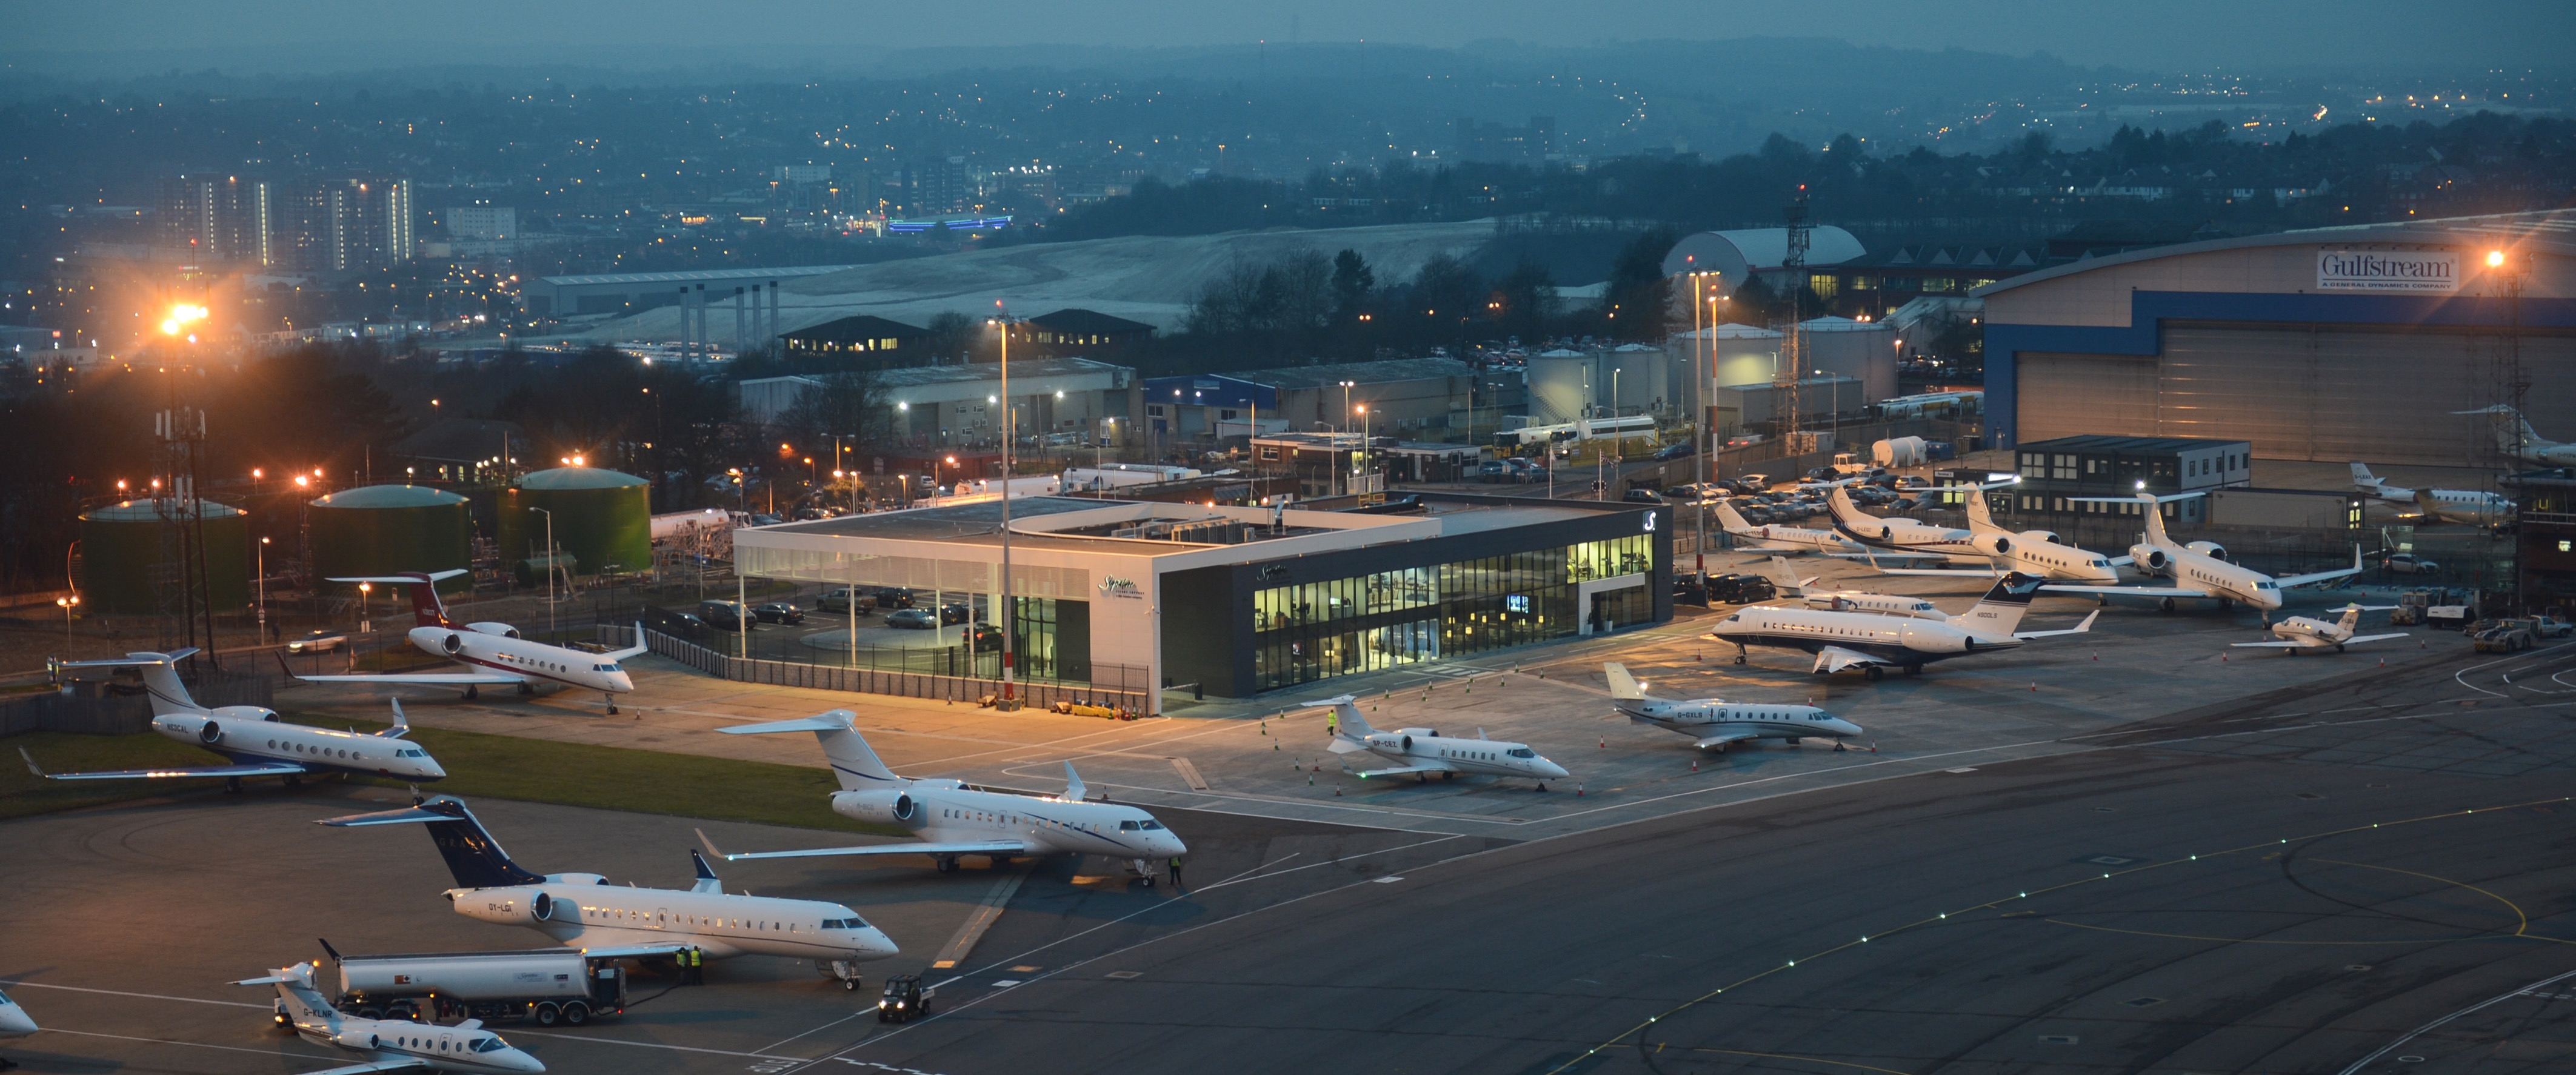 AIRSIDE JOBS LUTON WINDOWS 10 DRIVERS DOWNLOAD